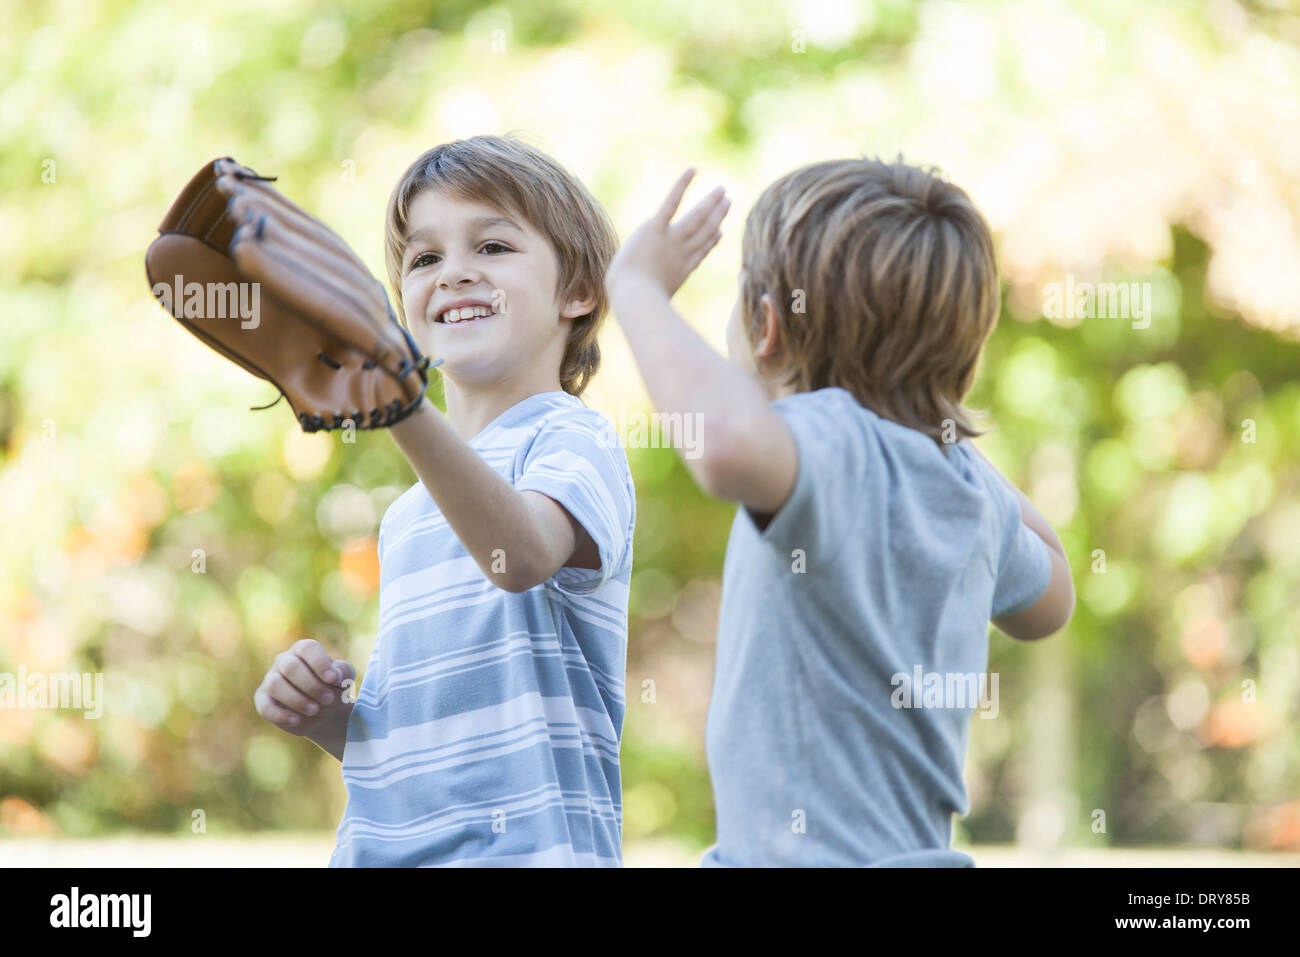 Boy wearing basebal glove - Stock Image